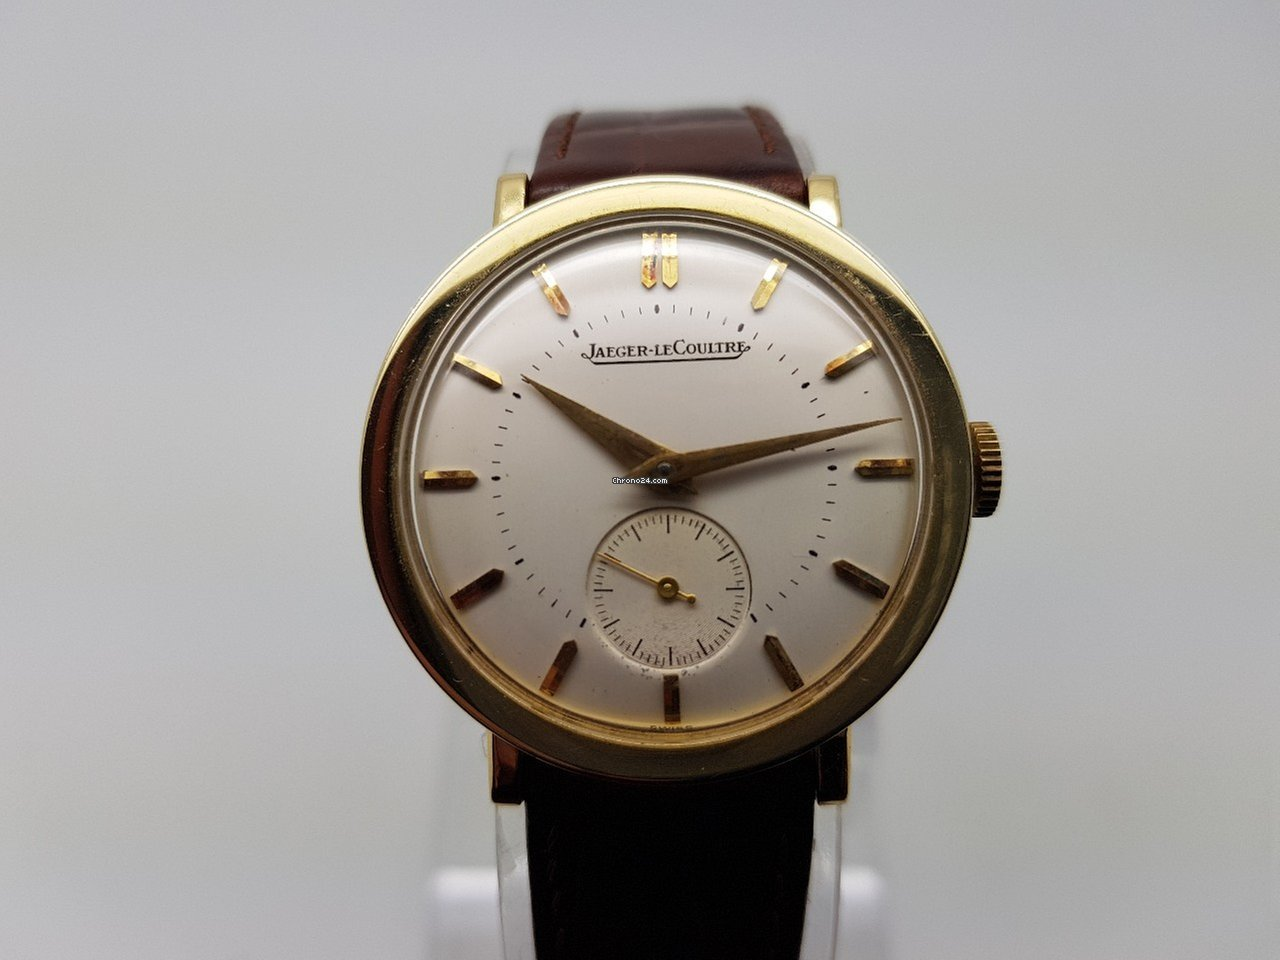 ee0521d1dfc7 Jaeger-LeCoultre 14k Yellow Gold Mens Vintage Watch Manual... for ...